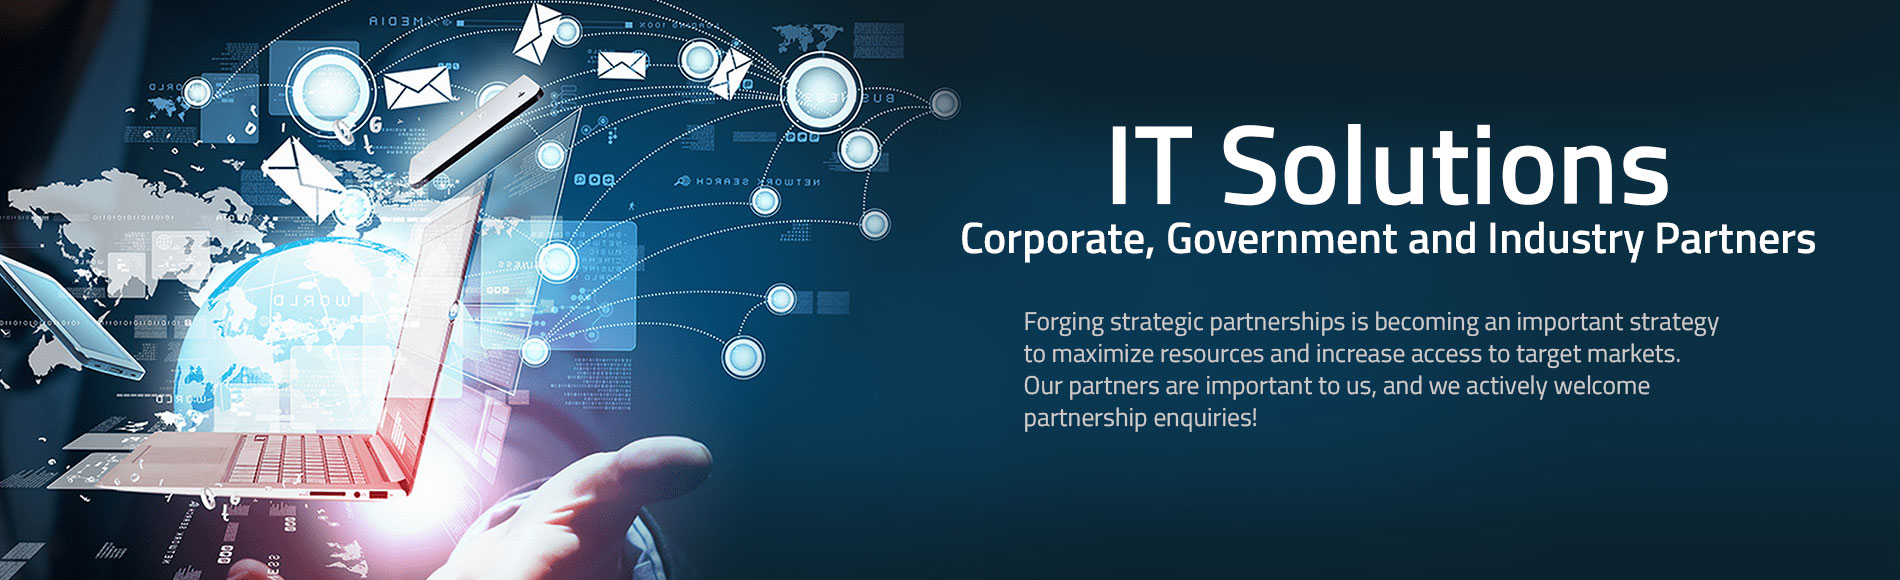 IT Solutions – Corporate, Government and Industry Partners